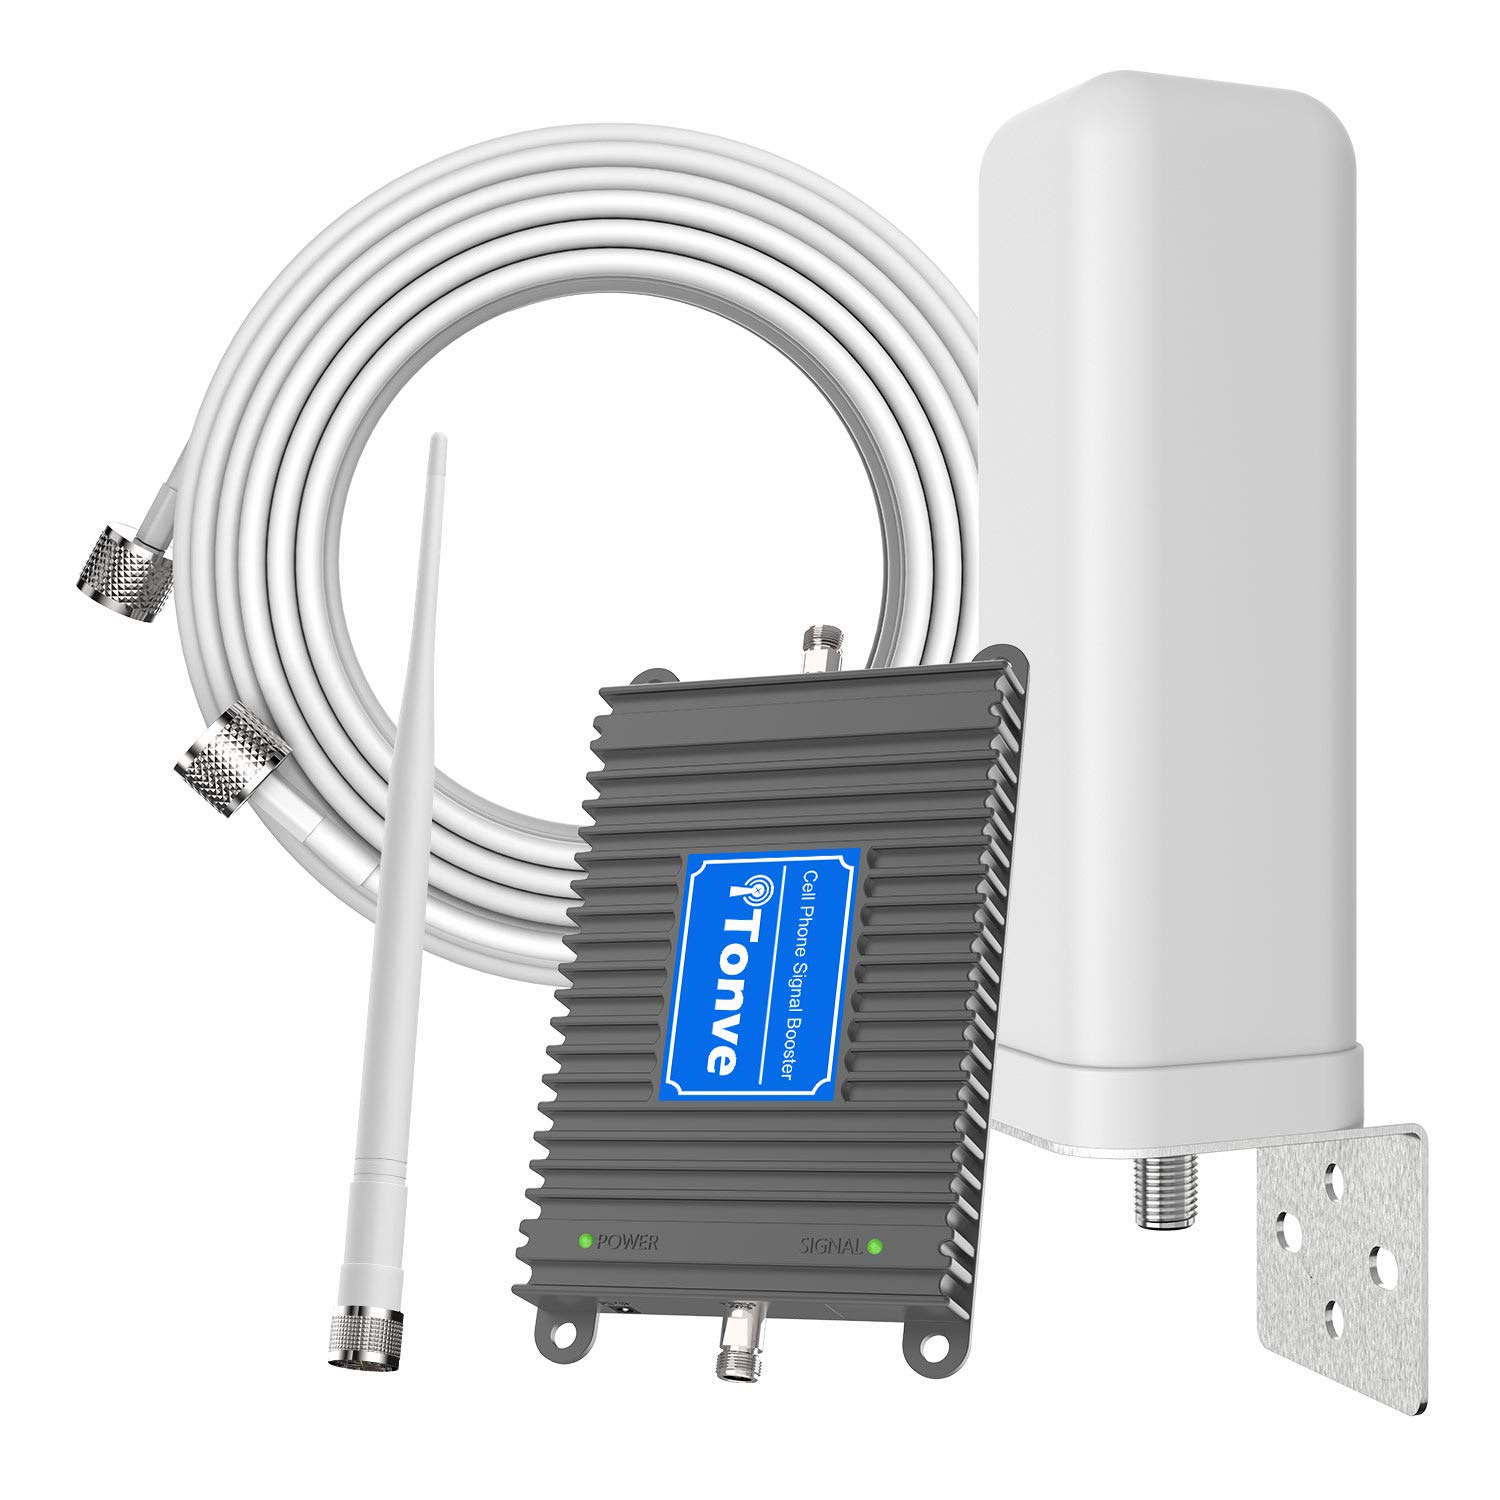 Home Cell Phone Signal Repeater Booster 4G LTE Dual Band 700MHz Band 12/13/17 Mobile Signal Amplifier Omni-Directional Antenna for Verizon, AT&T, T-Mobile, Straight Talk, U.S. Cellular Supports Volte by Tonve